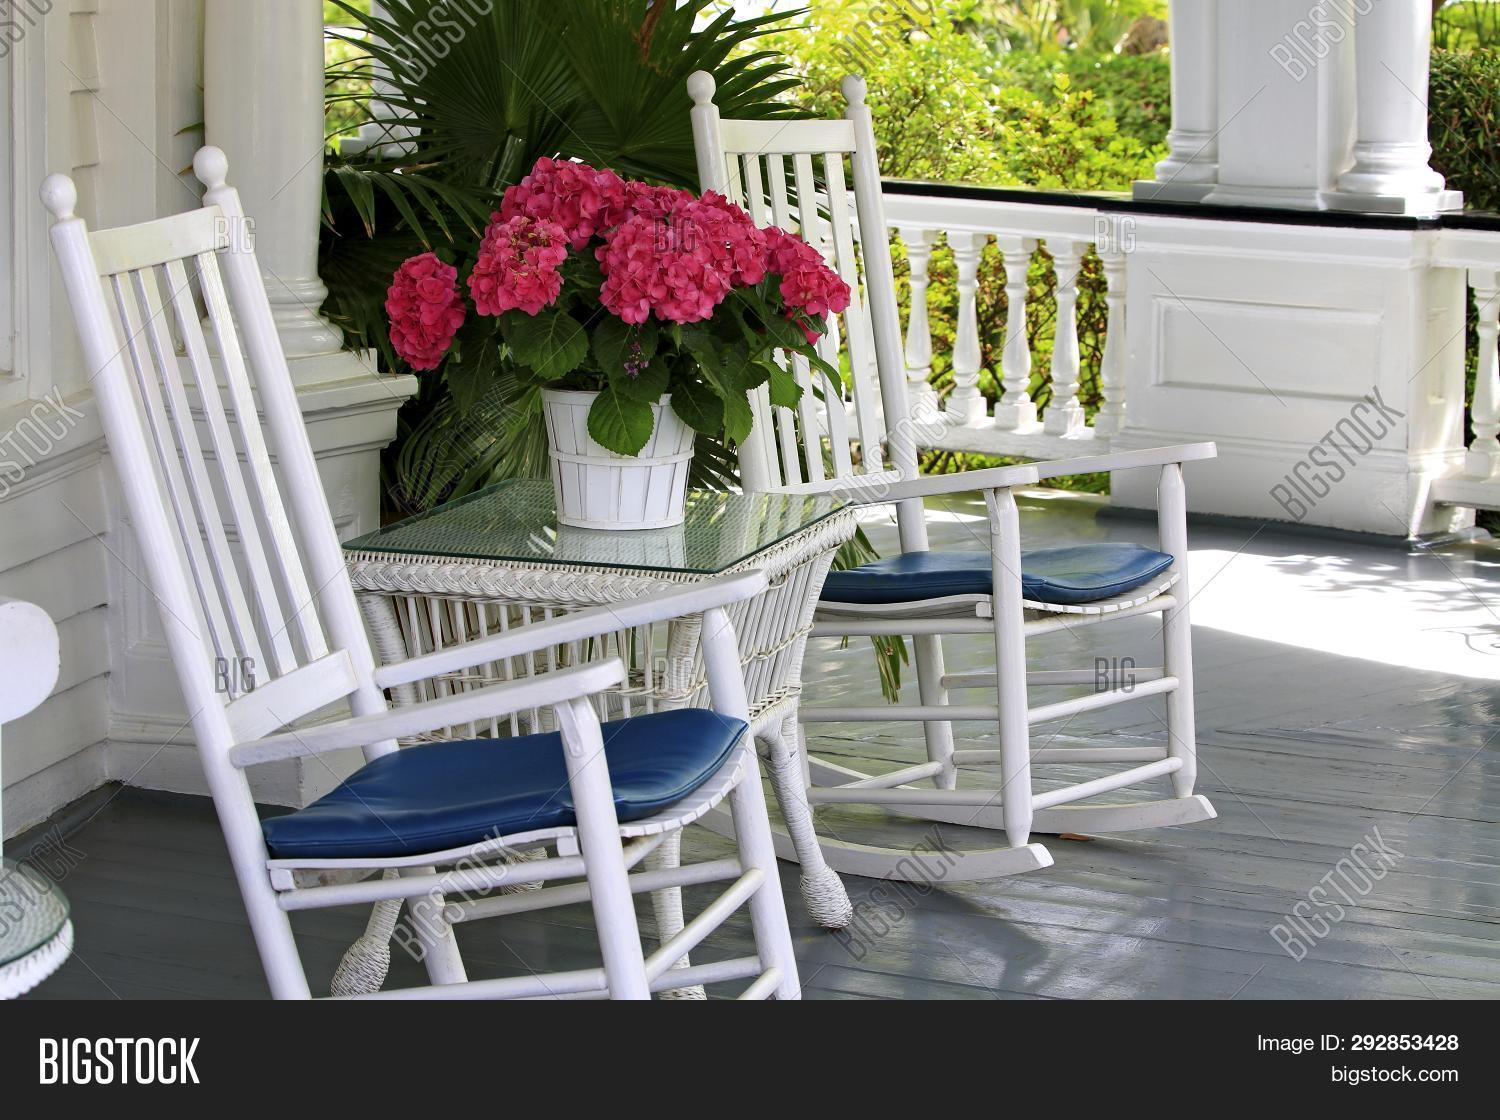 Surprising Rocking Chairs On Image Photo Free Trial Bigstock Gmtry Best Dining Table And Chair Ideas Images Gmtryco